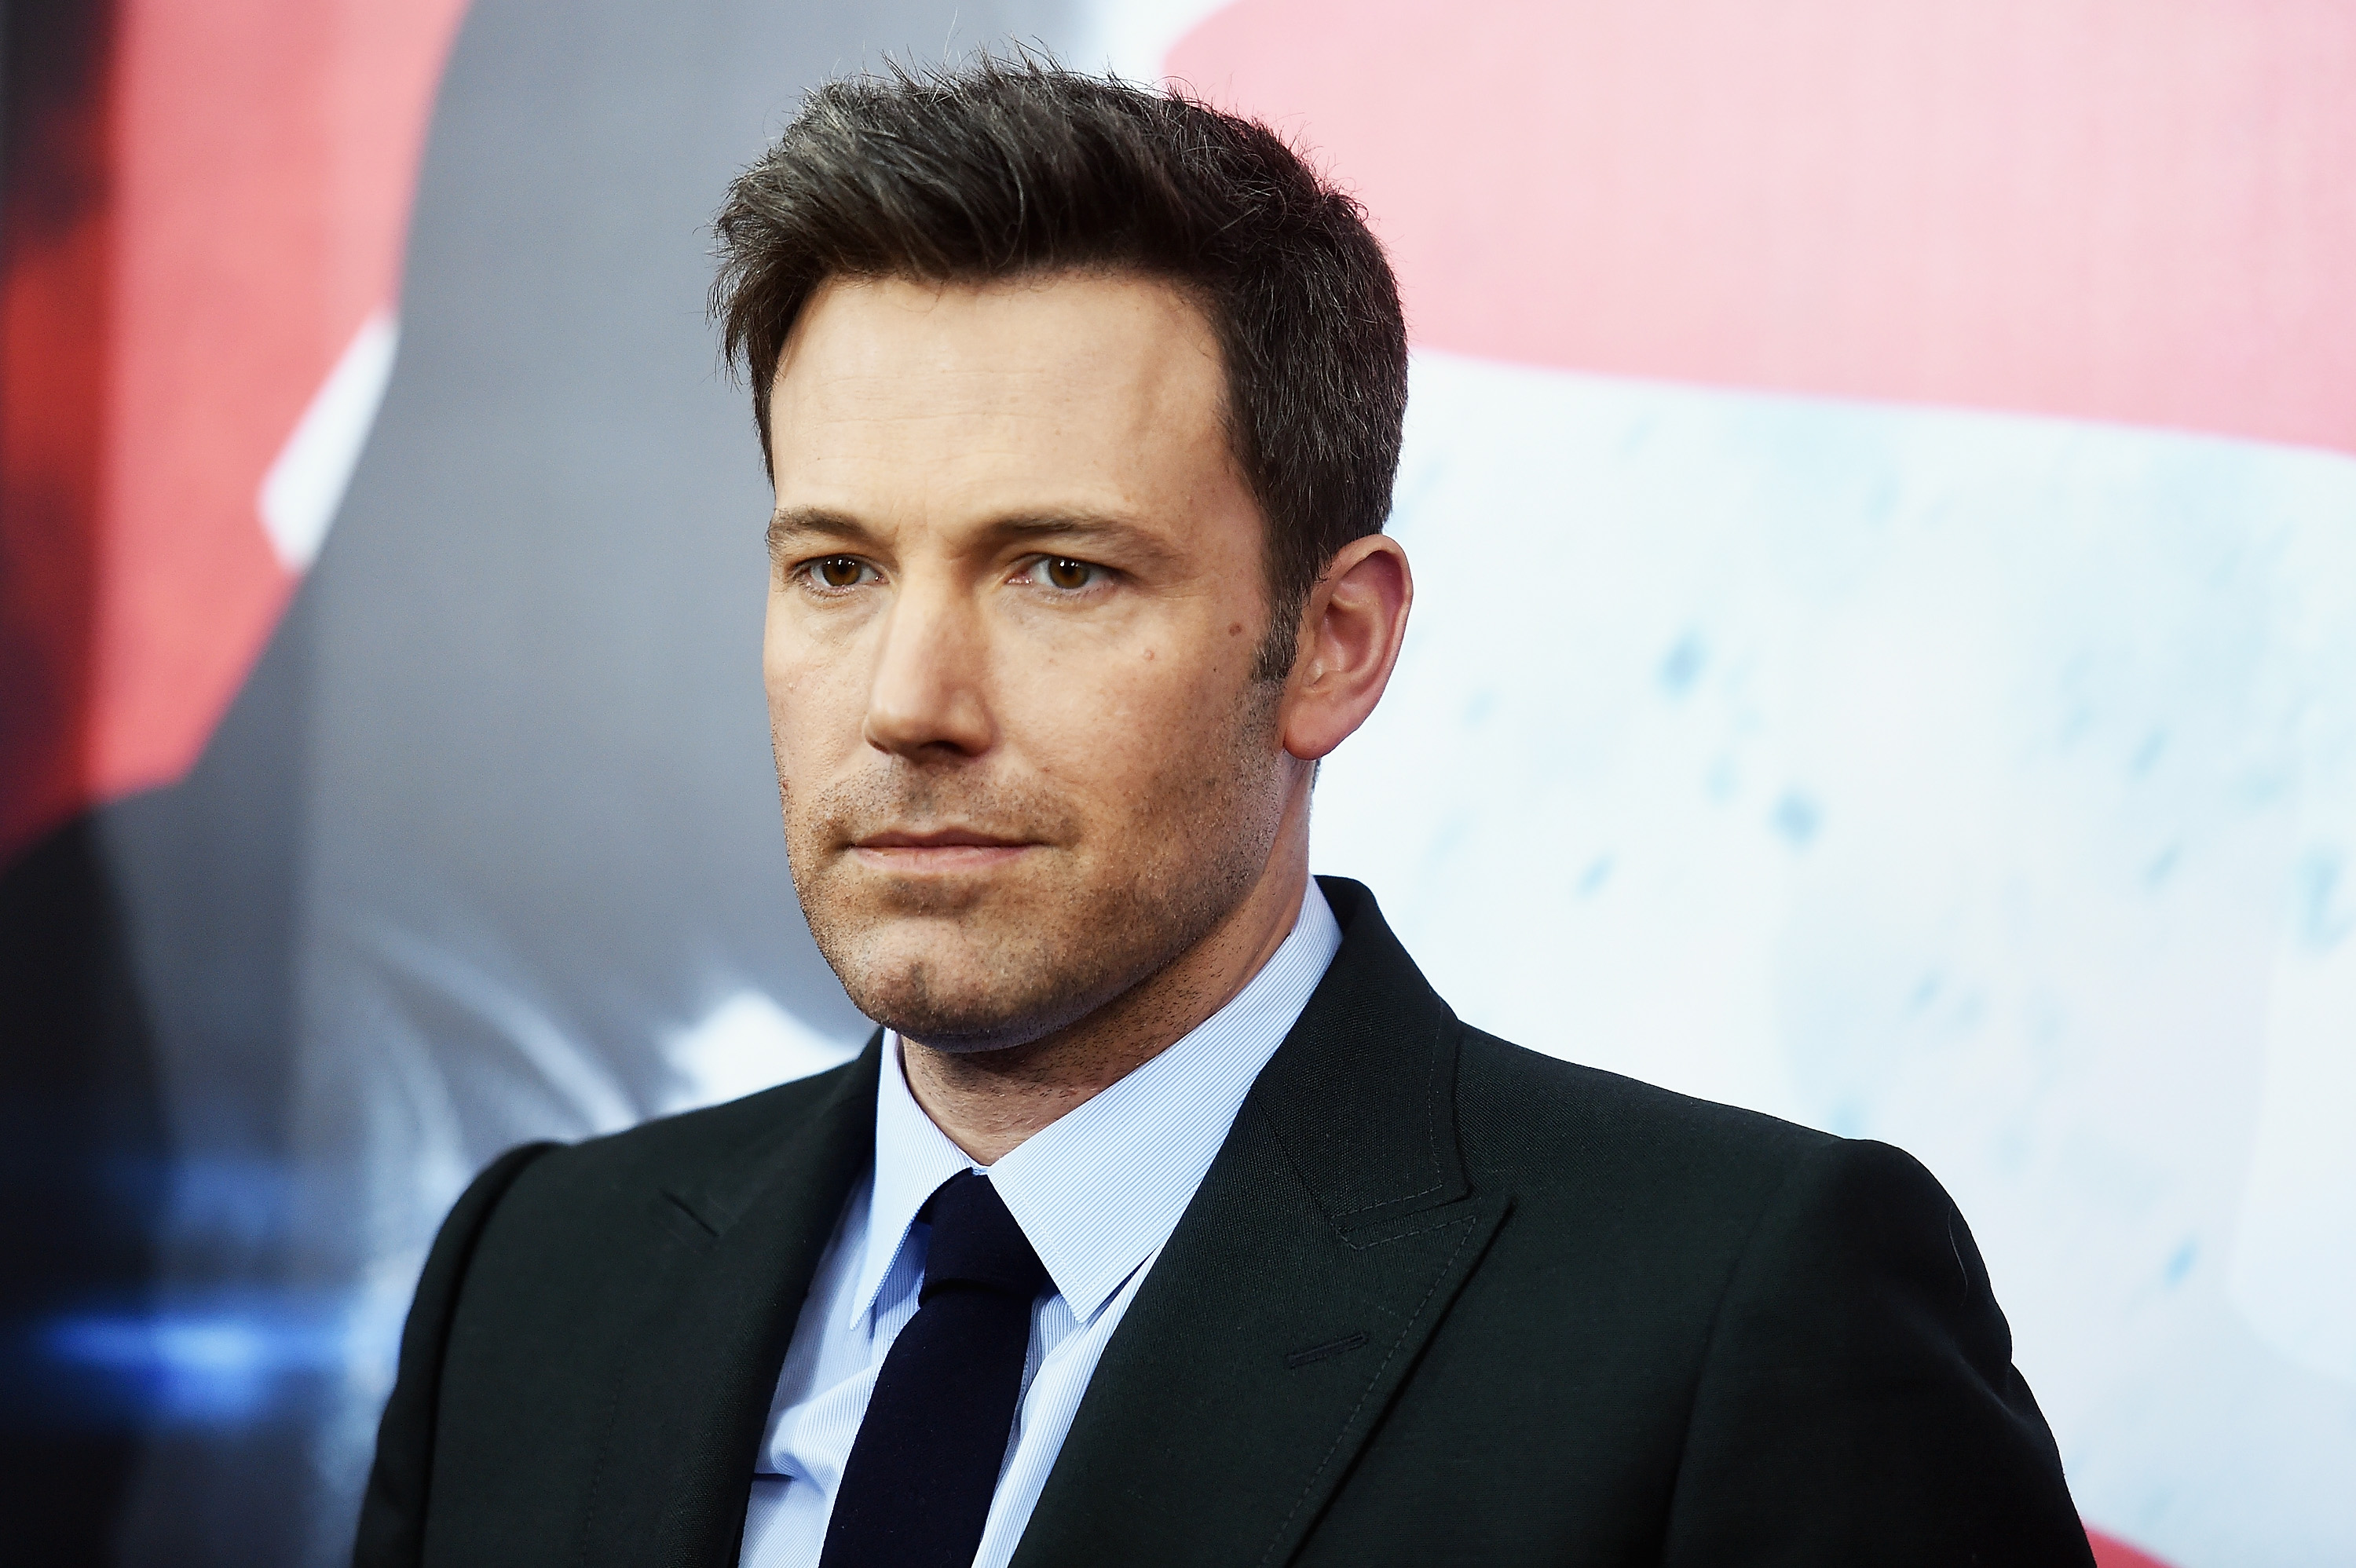 Ben Affleck has become executive producer on Justice League movie to 'support' Zack Snyder